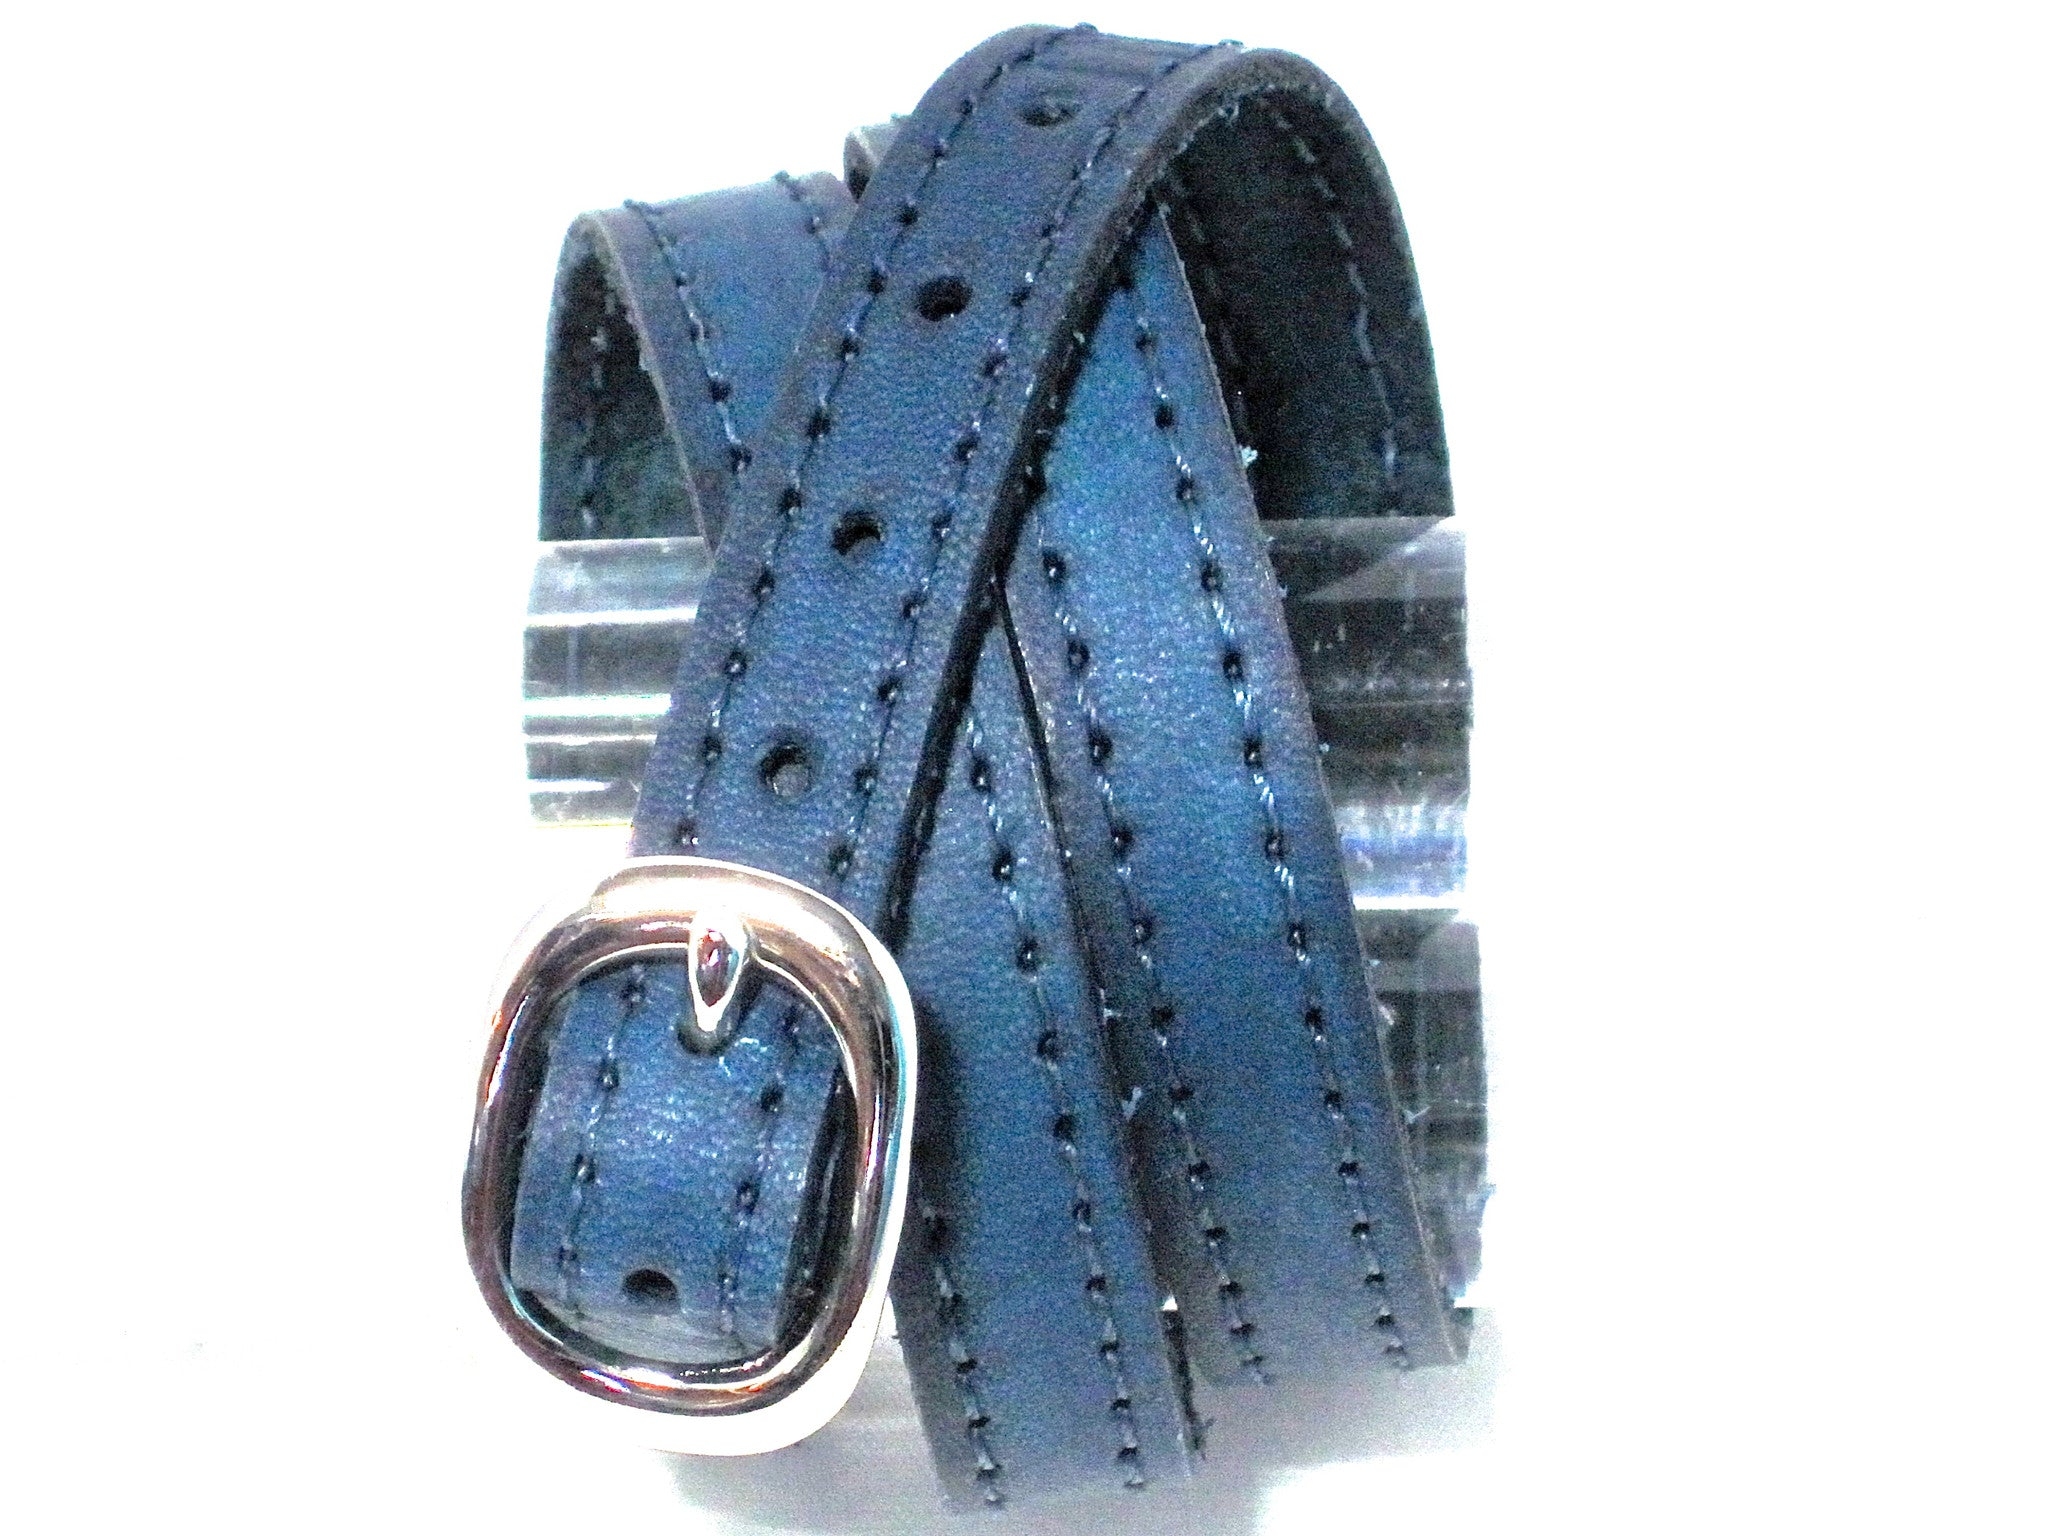 TRIPLE WRAPAROUND LEATHER BRACELET WITH COACHMAN LOOP AND TWISTED ANCHOR SHACKLE  by nyet jewelry.